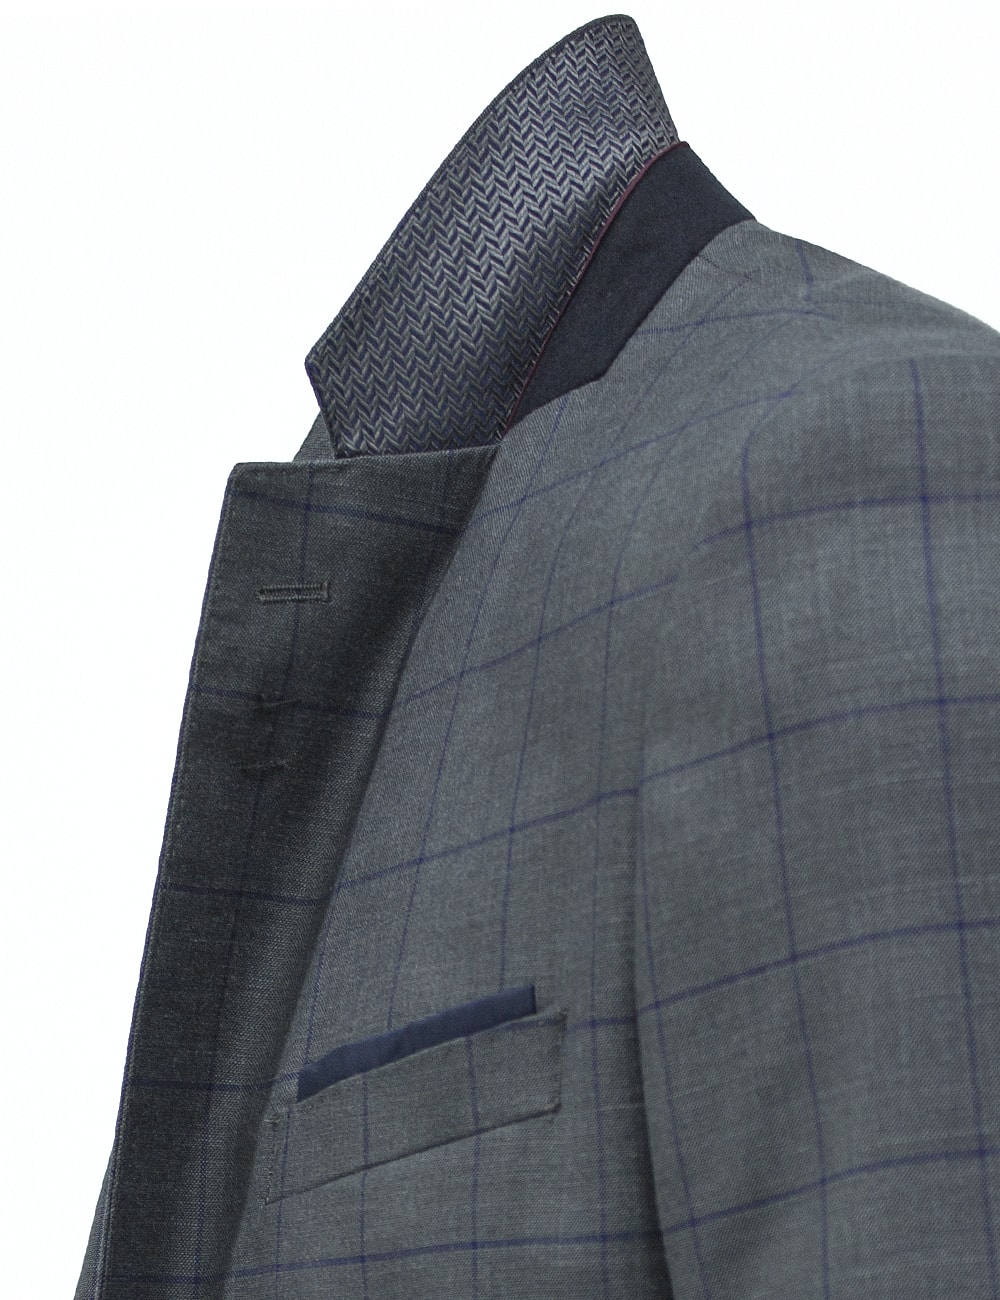 Slim / Tailored Fit Charcoal Grey Twill Single Breasted Suit Set - SS4.4